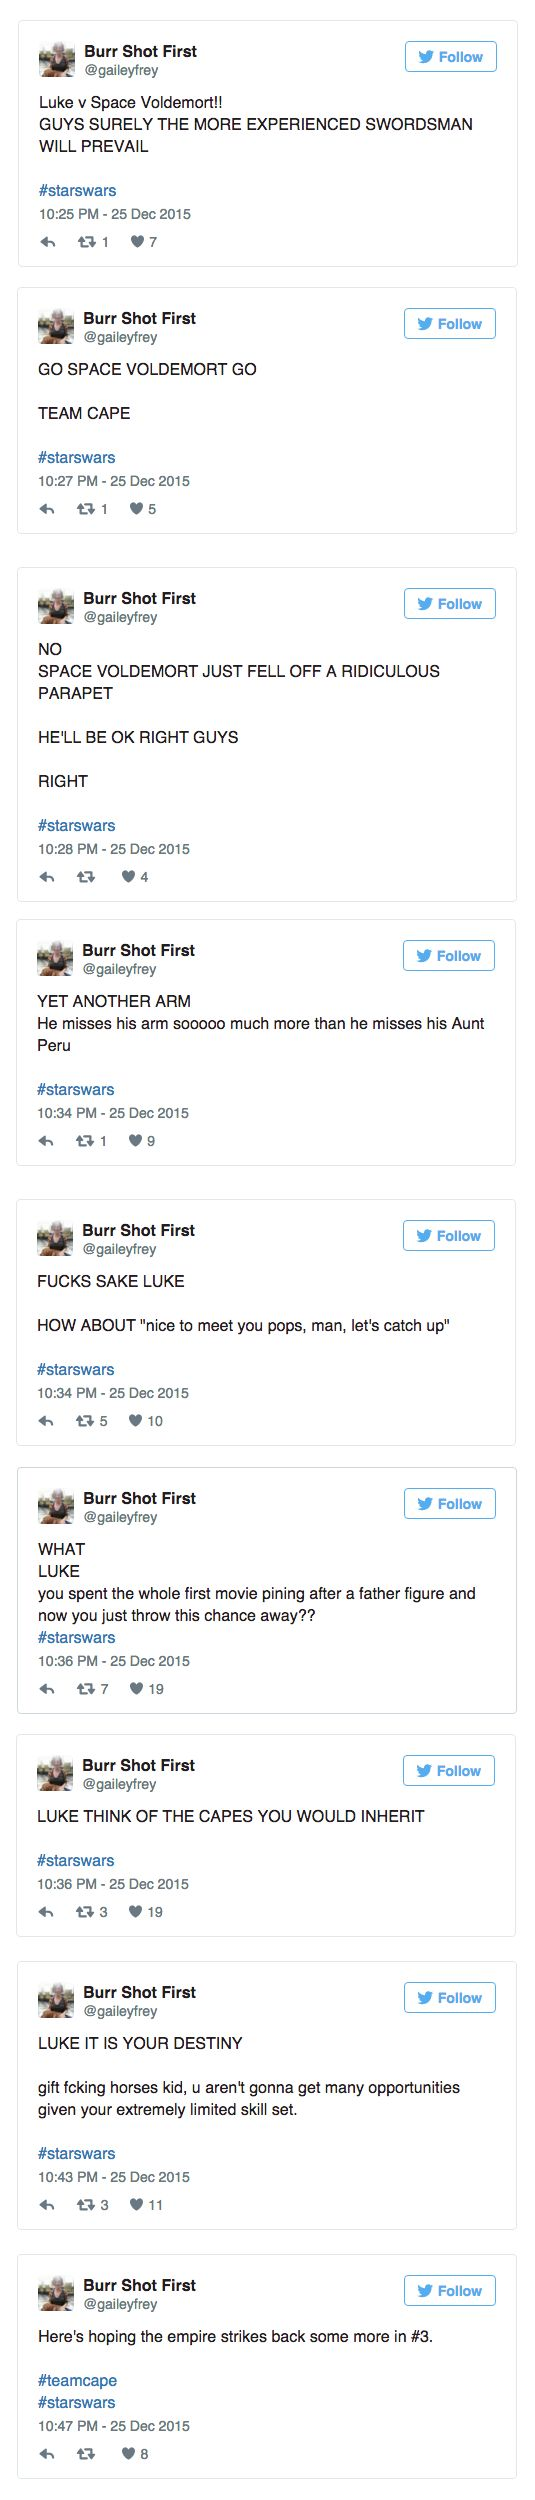 This Gal Live Tweeted Her First Time Watching Star Wars and Got a Lot of Things Wrong